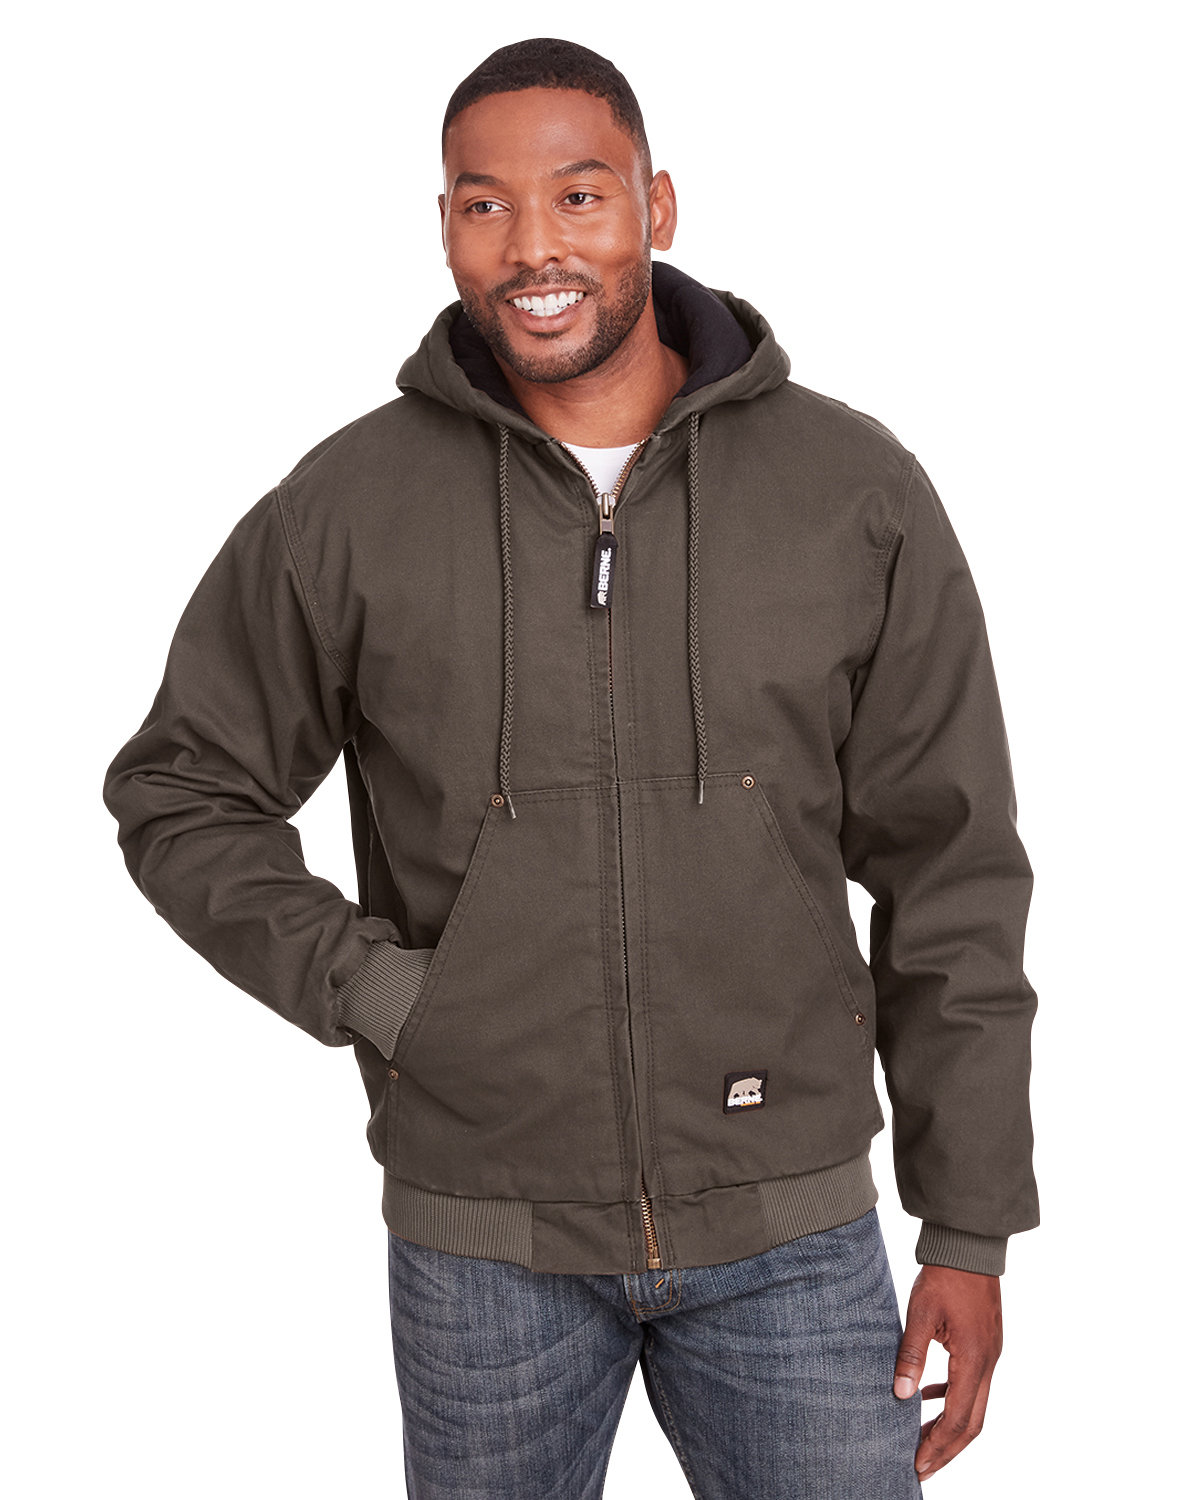 Berne Men's Tall Highland Washed Cotton Duck Hooded Jacket OLIVE DUCK